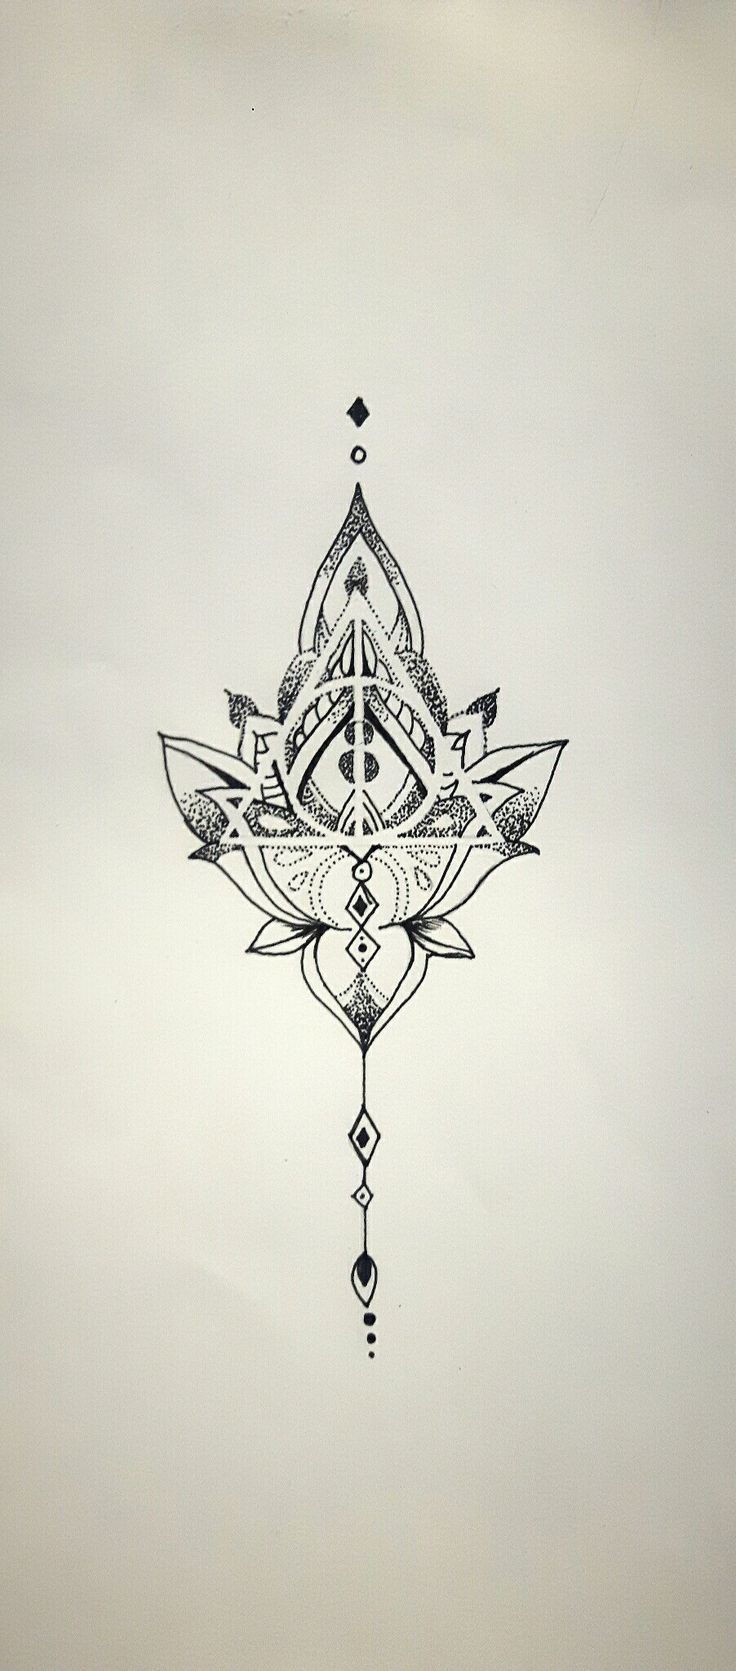 Mandala Deathly Hallows, tattoo idea